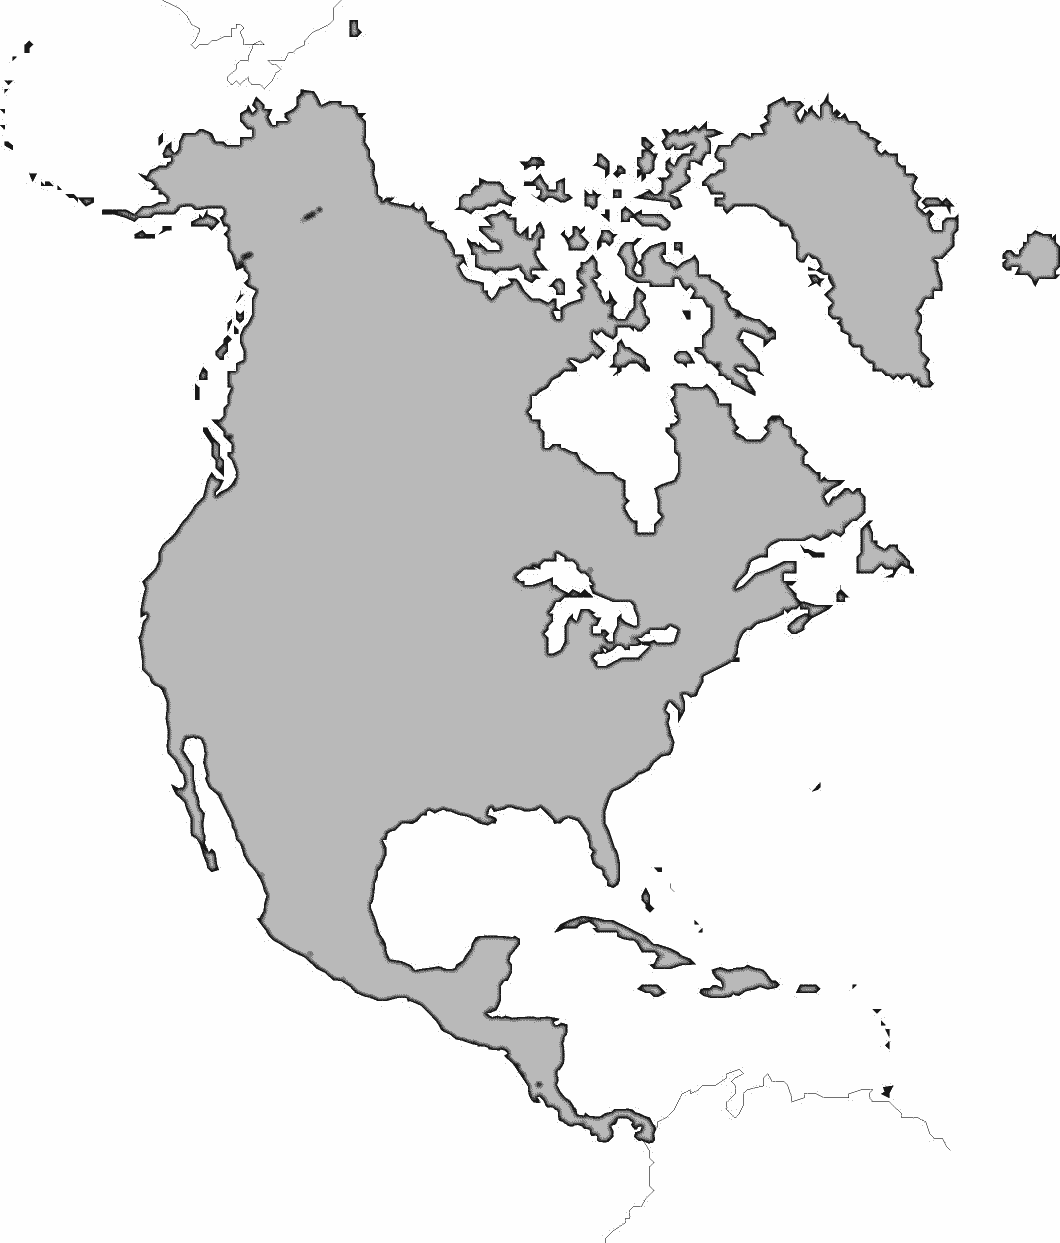 Blank Map Of North America Free Printable Maps - Maps of north america